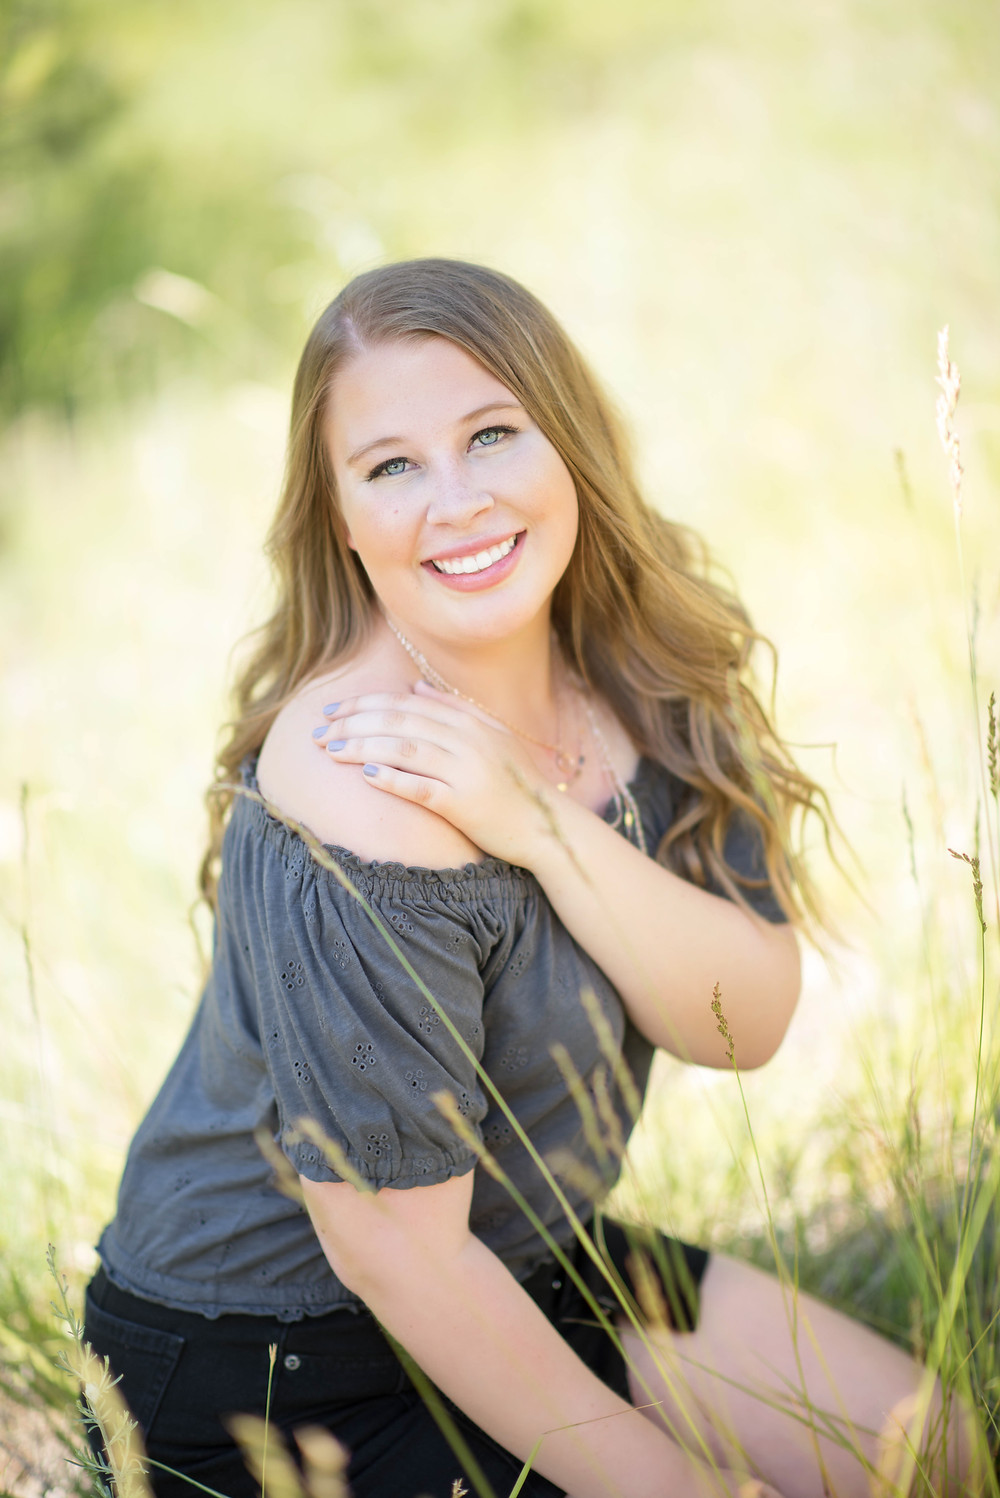 Anaconda Seniors | High School | Missoula Senior Photographer | Montana Senior Photographer | Infinite Photography Missoula